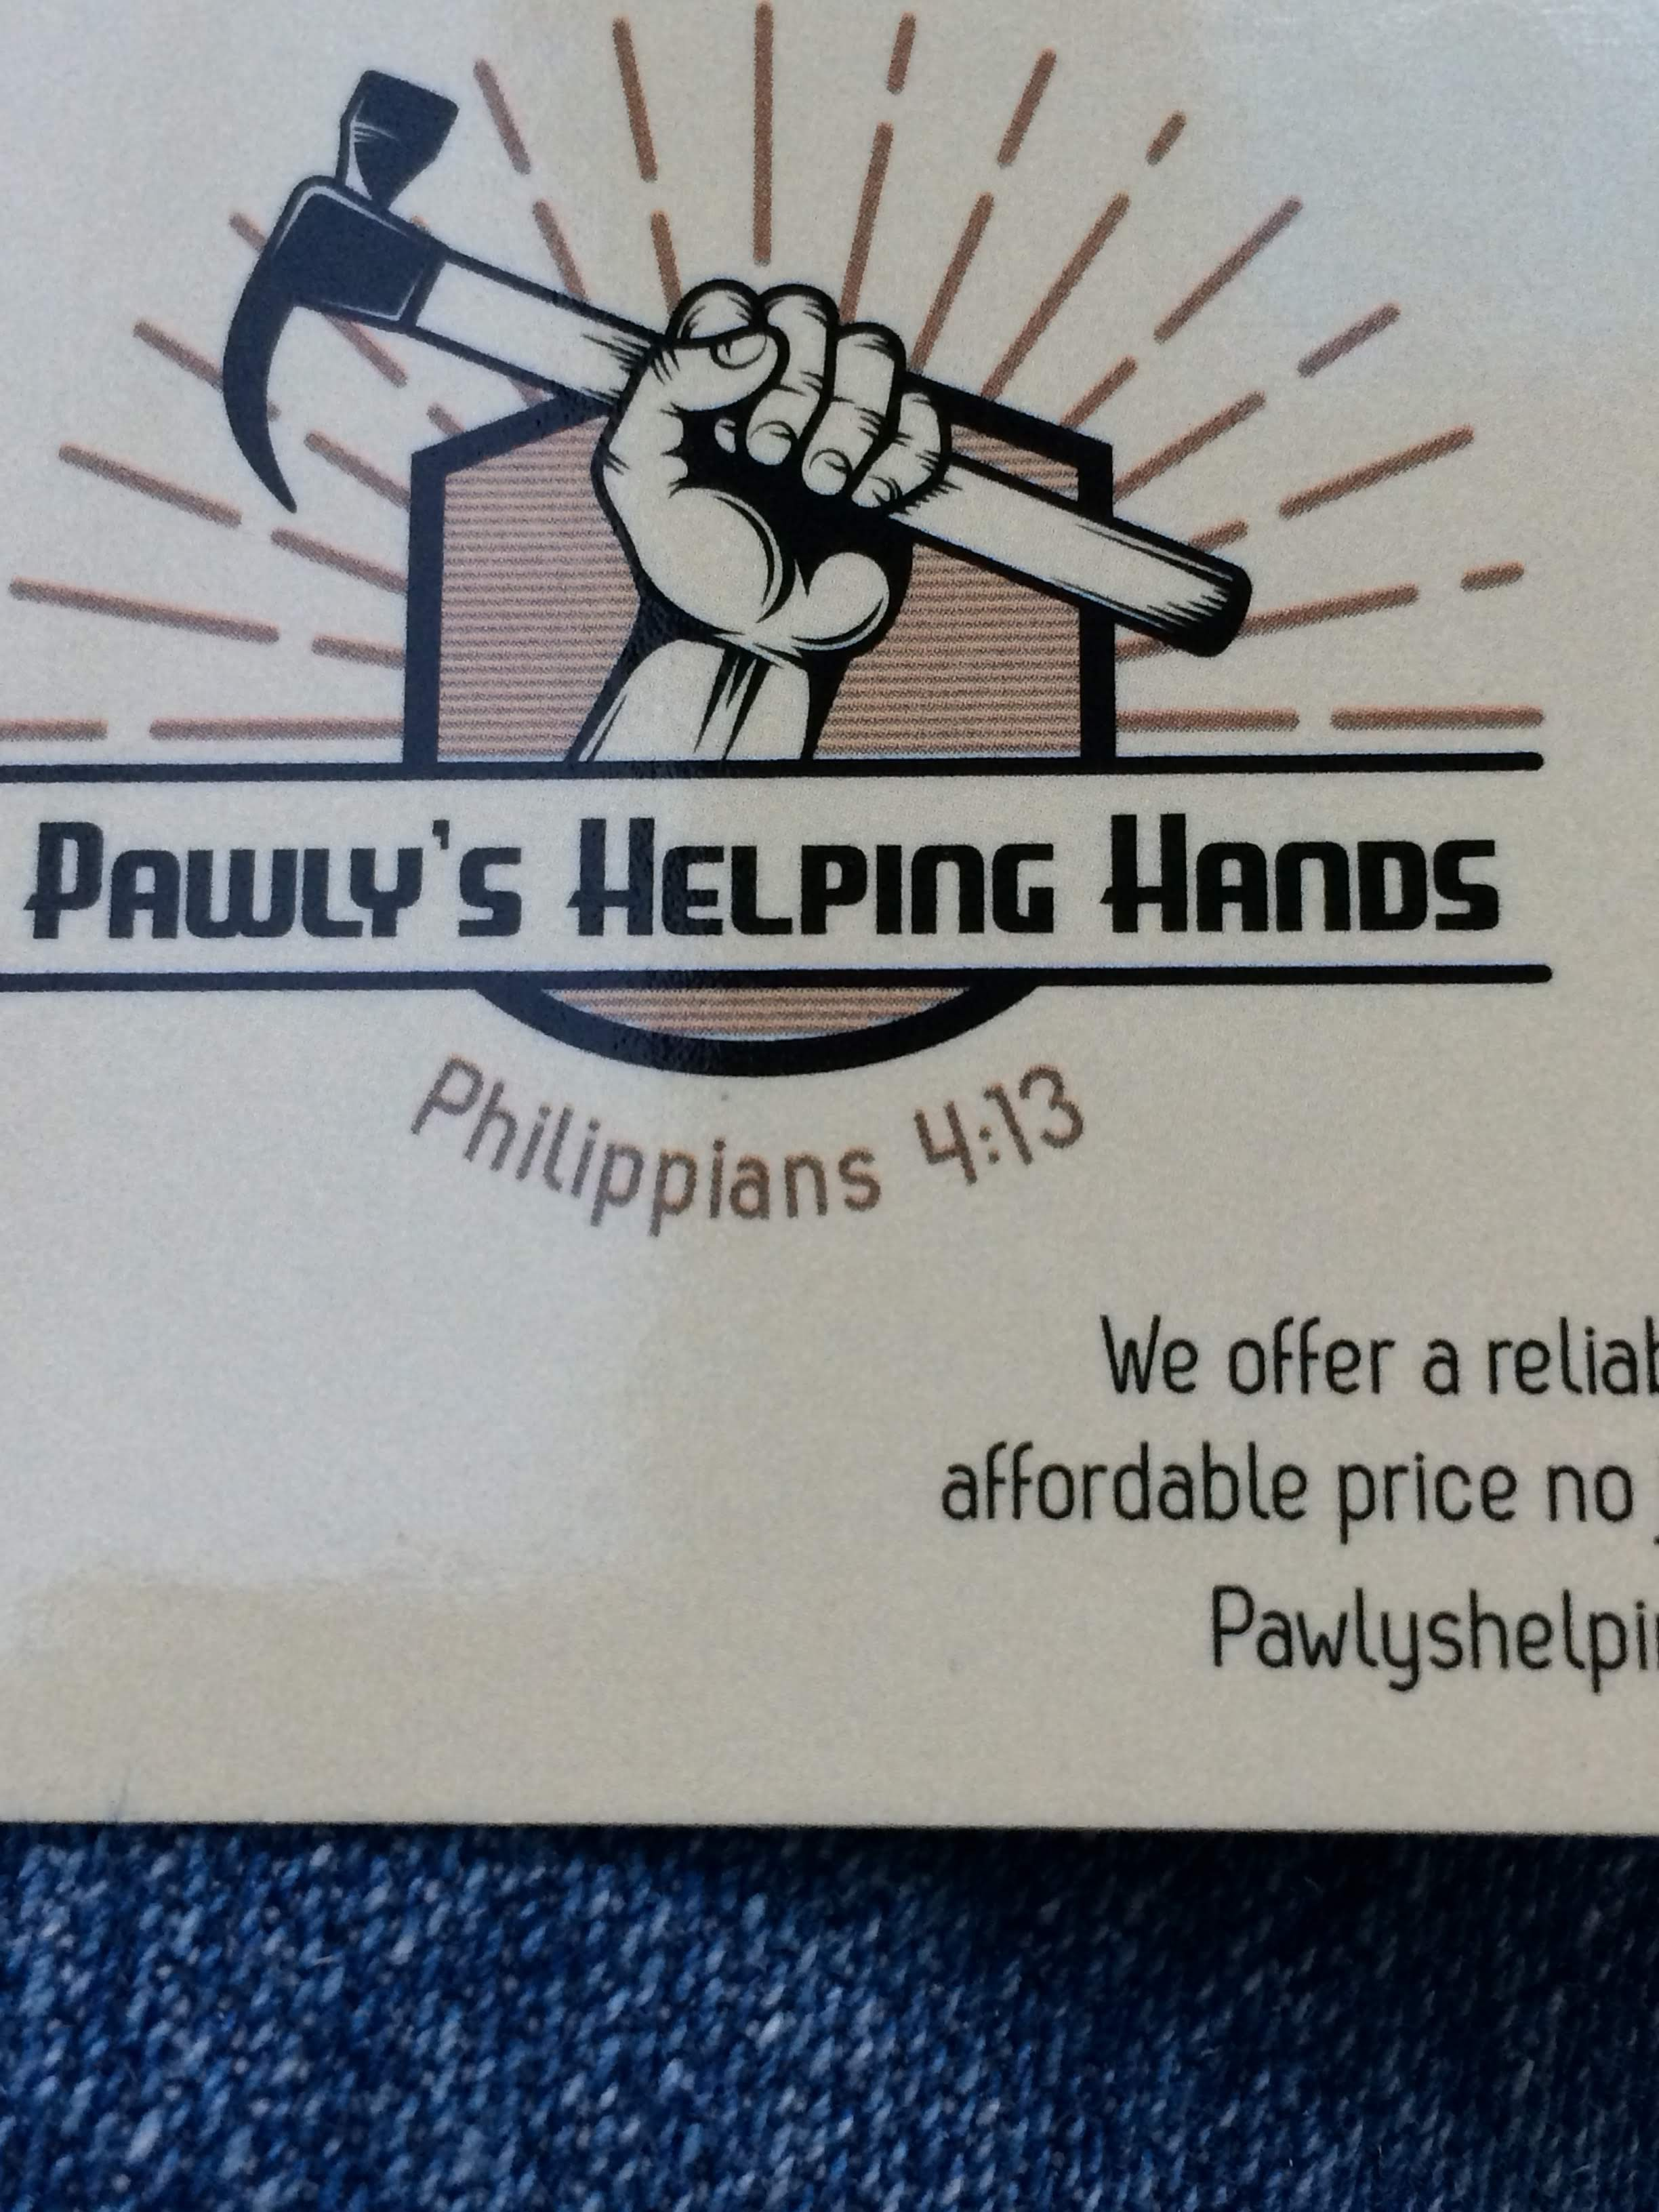 Pawly's Helping Hands image